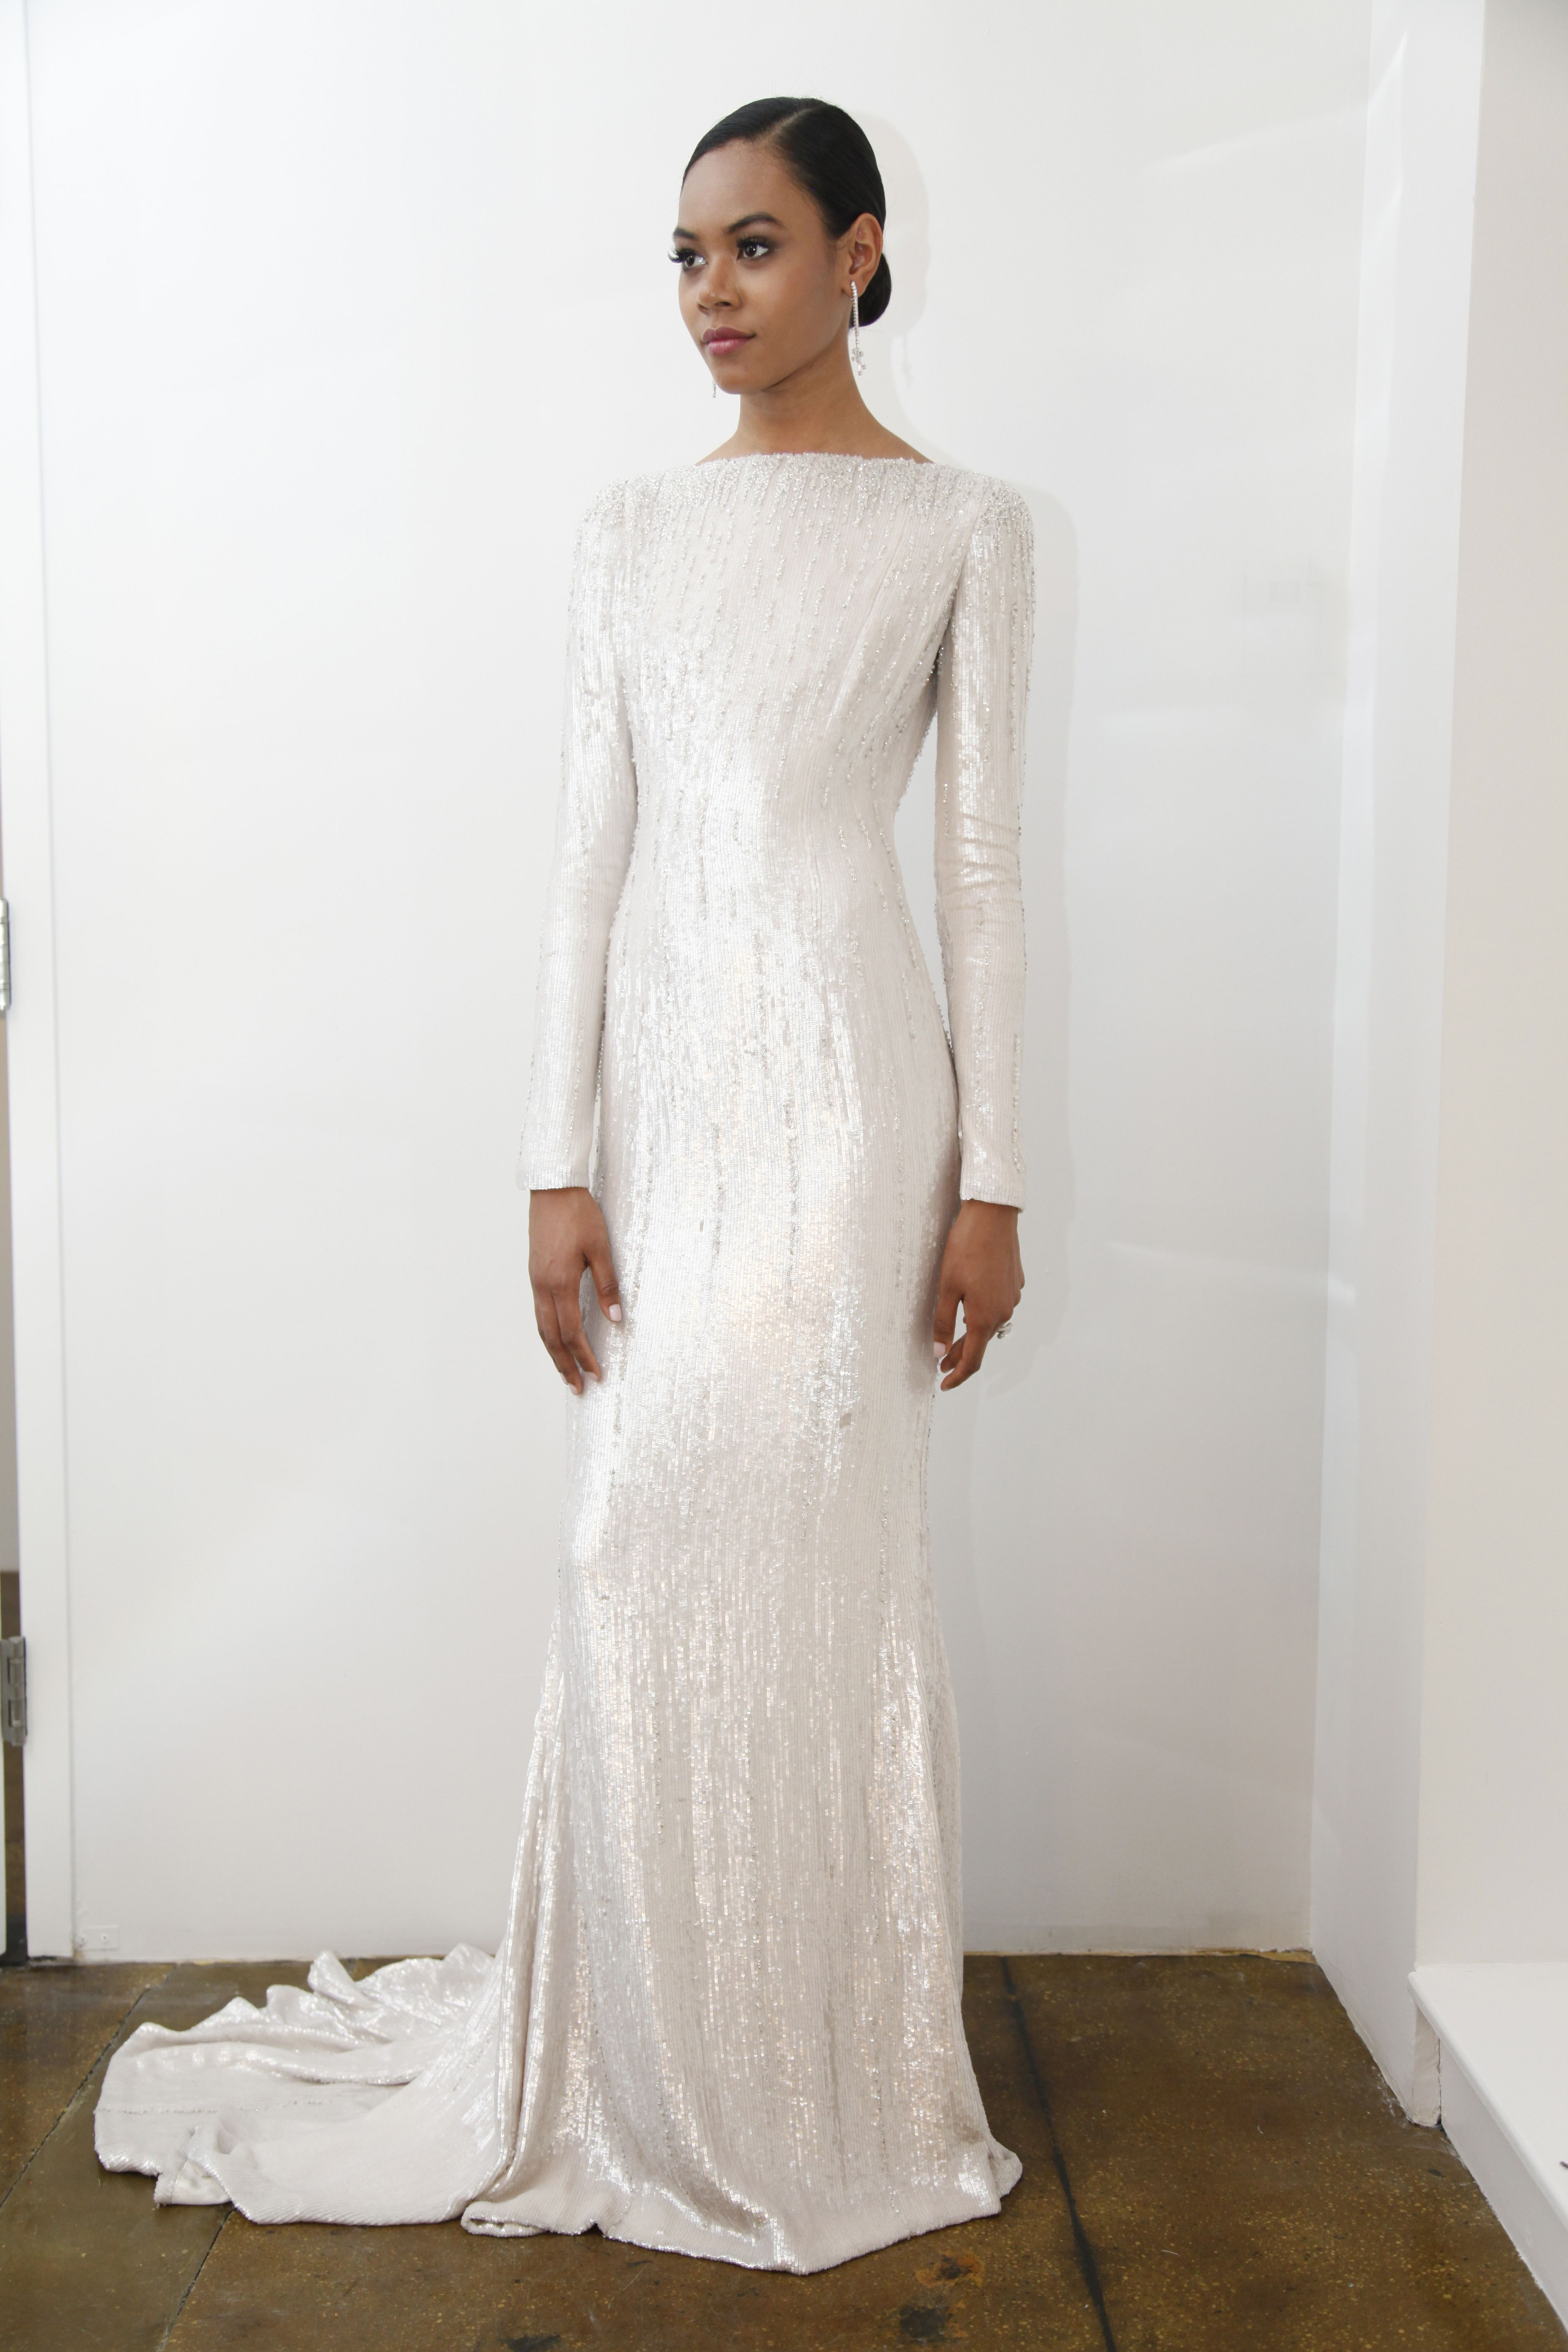 The Most Flattering Style Of Wedding Gown Wedding Dress Sequin Wedding Dress Advice Wedding Dresses [ 5616 x 3744 Pixel ]